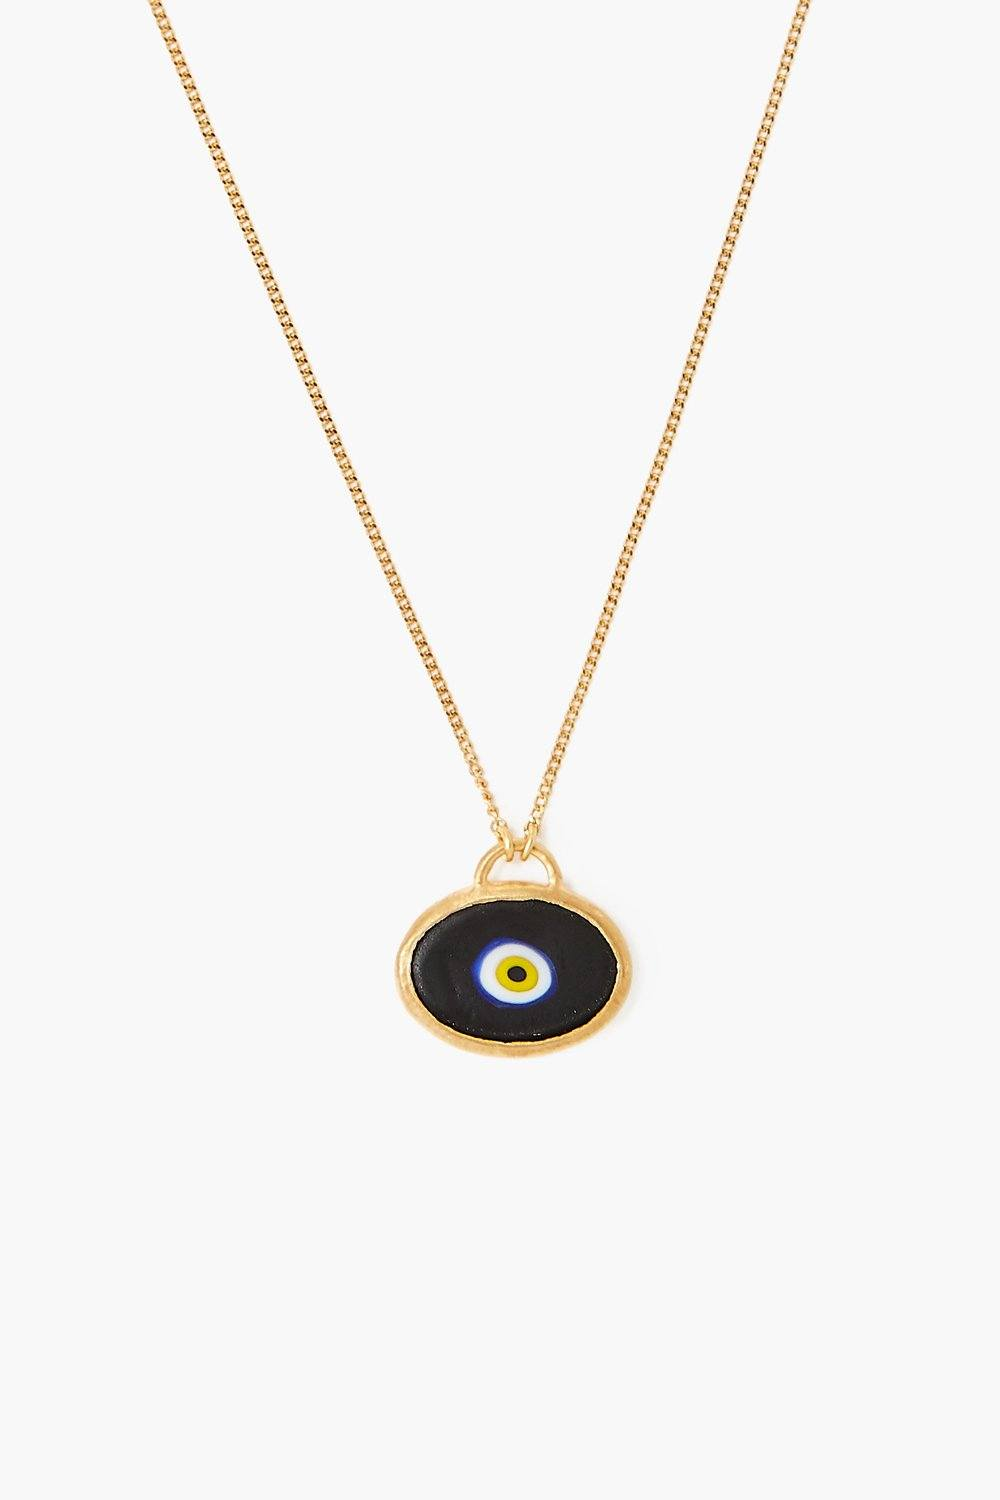 Black Grand Evil Eye Pendant Necklace